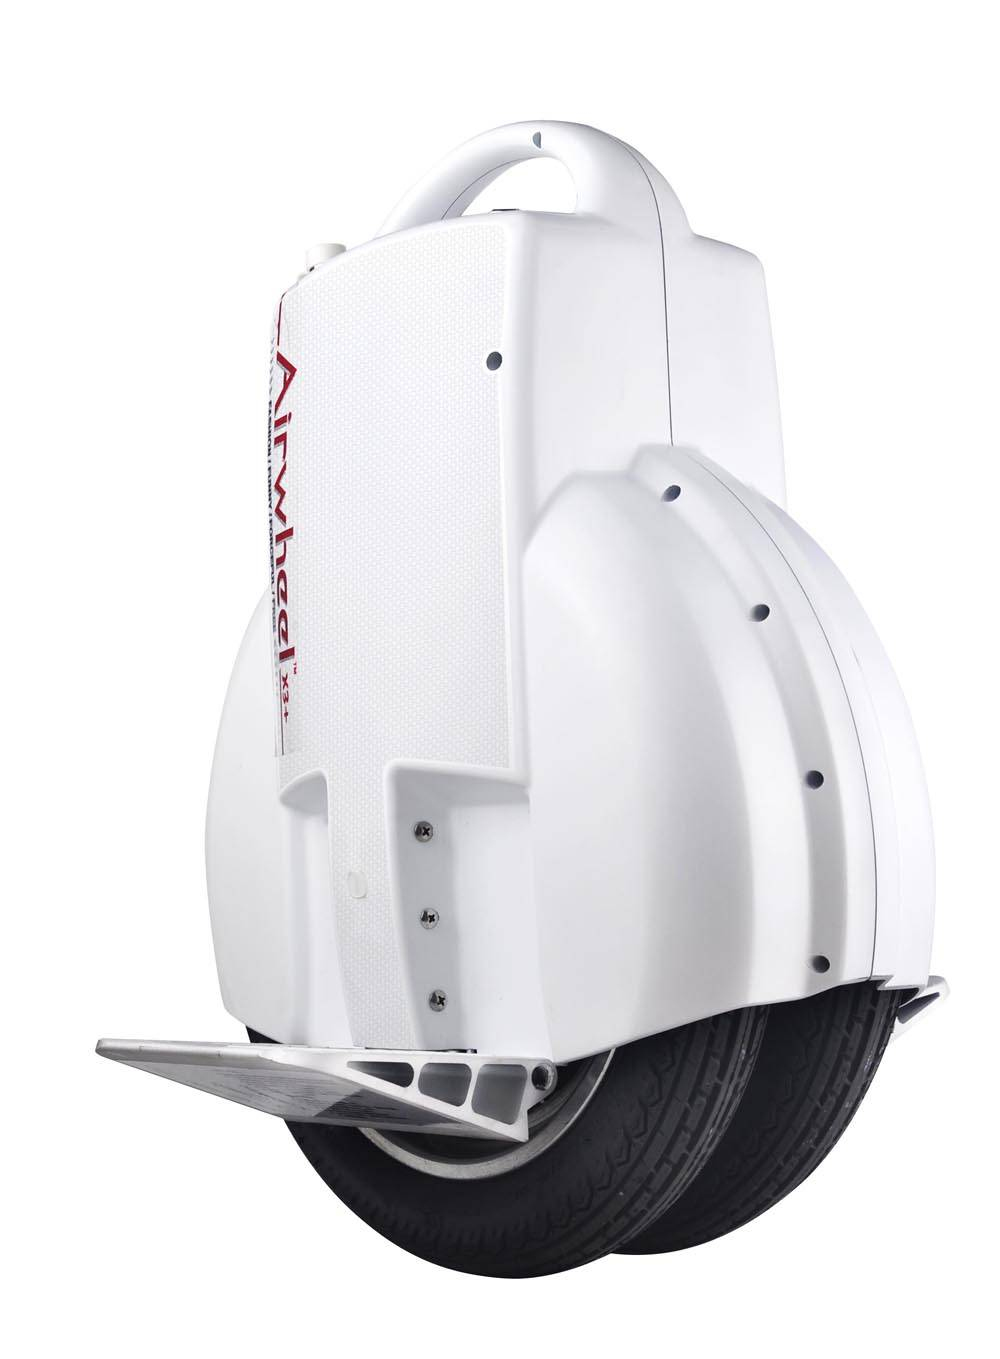 Airwheel Electric Unicycle Q3 white